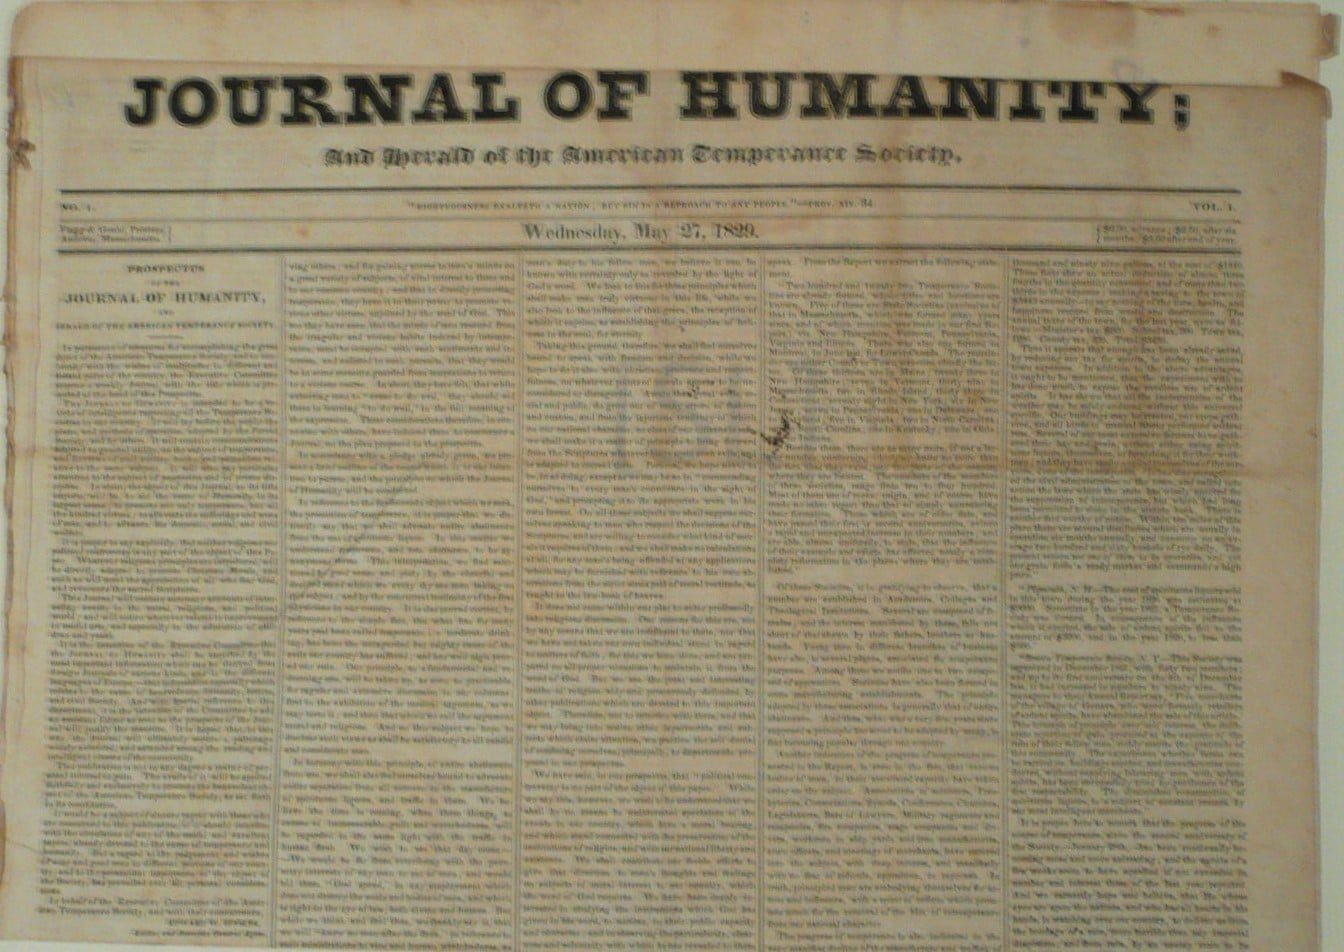 Journal of Humanity